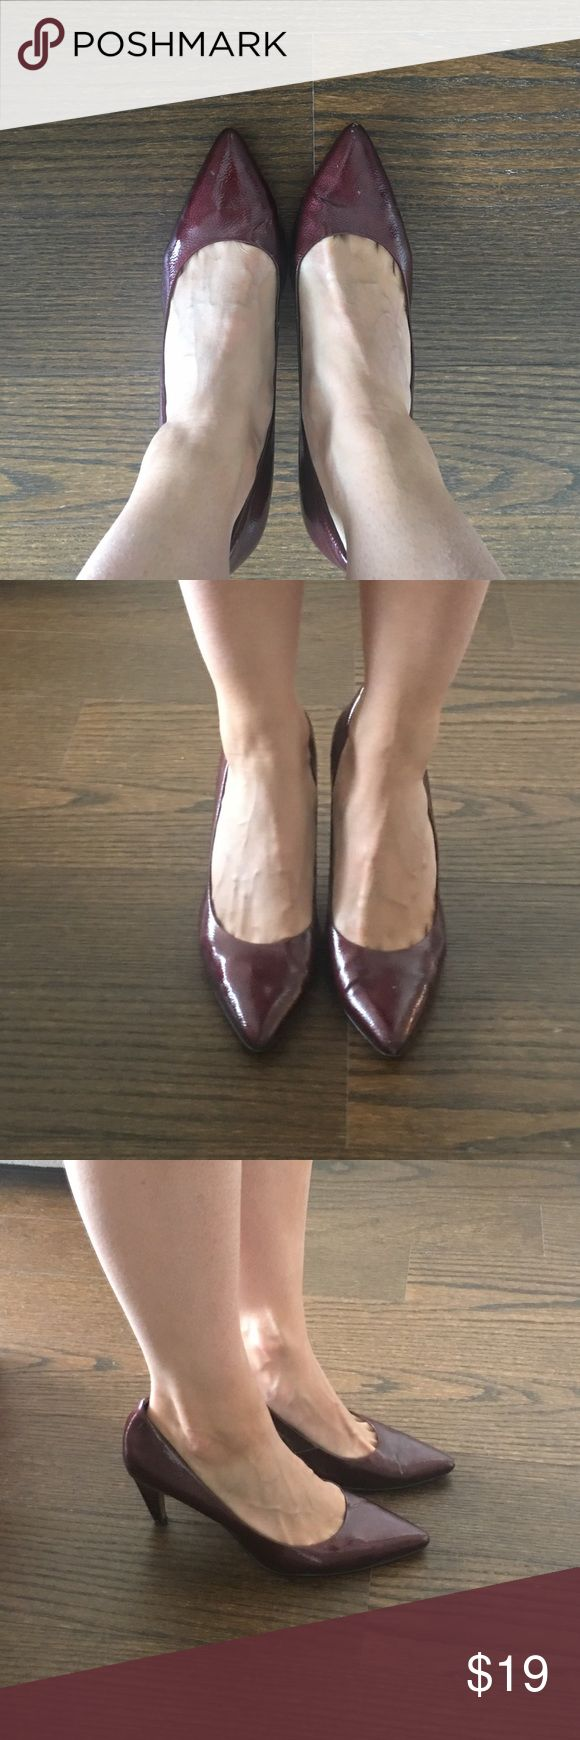 Tahari maroon patent heels Perfect for the office and super comfortable! Lovely color gives your outfit a bit of pop. 3.5in heel. Some visible wear. Tahari Shoes Heels